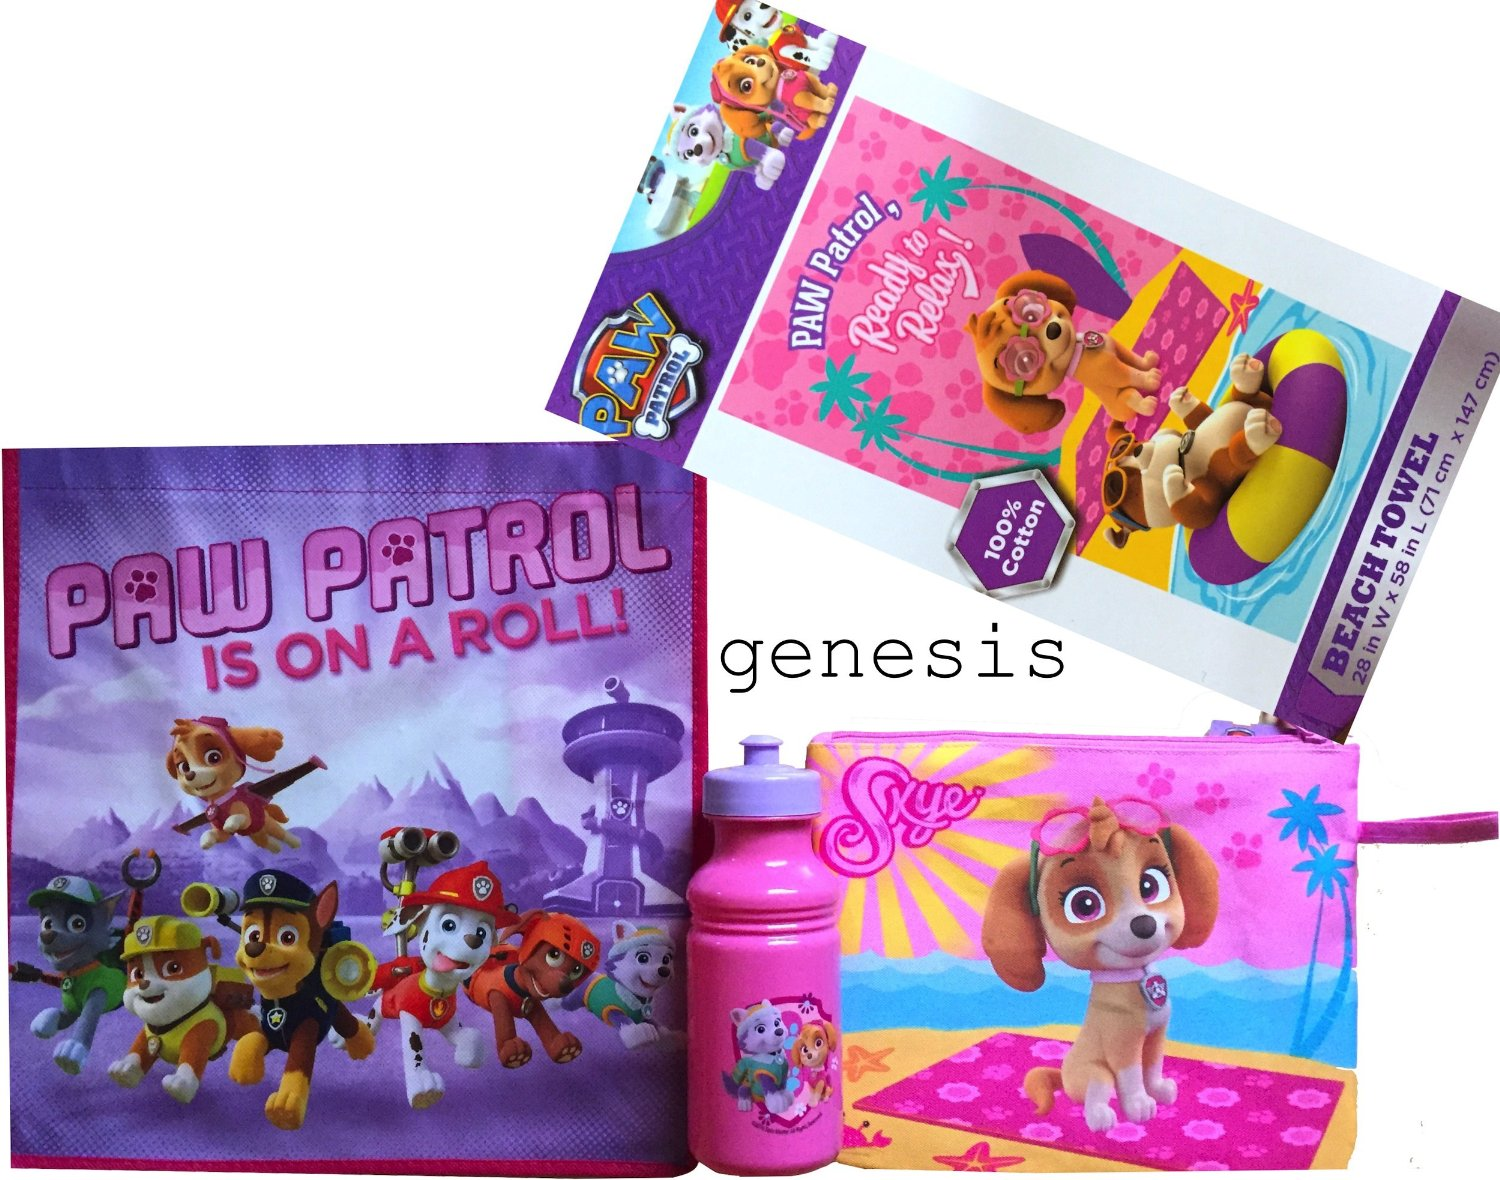 Paw Patrol Girls Beach Trip Gift Set Includes Paw Patrol Beach Towel, Tote Bag, Bottle & Small Beach Bag